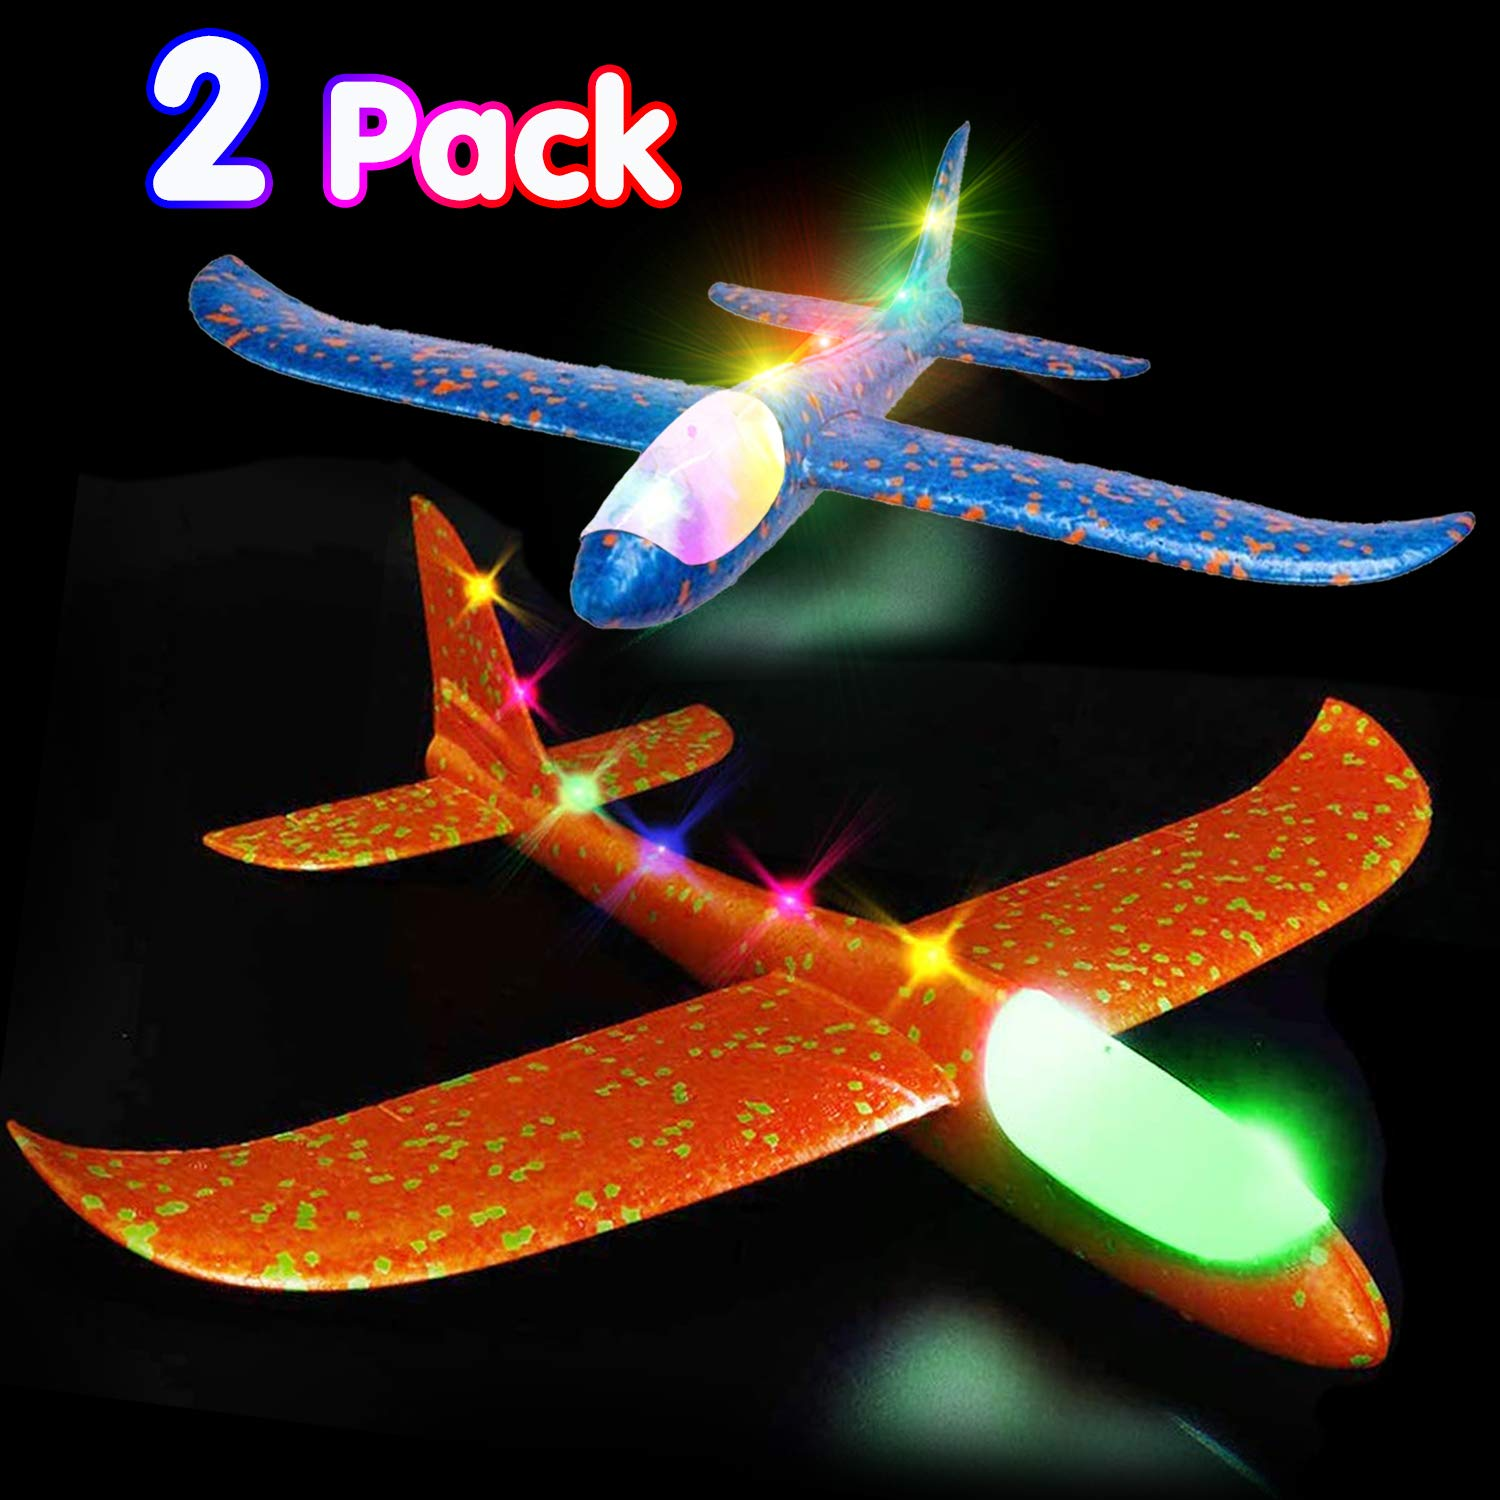 Airplane Toys Throwing Foam Plane, 13.5'' Inch LED Light Up Glider Airplane Model Toy with Dual Flight Mode Challenging Outdoor Plane Jet Sports Game Flying Toys Gift for Kids Toddlers Teens (2 Pack) by AMENON (Image #6)